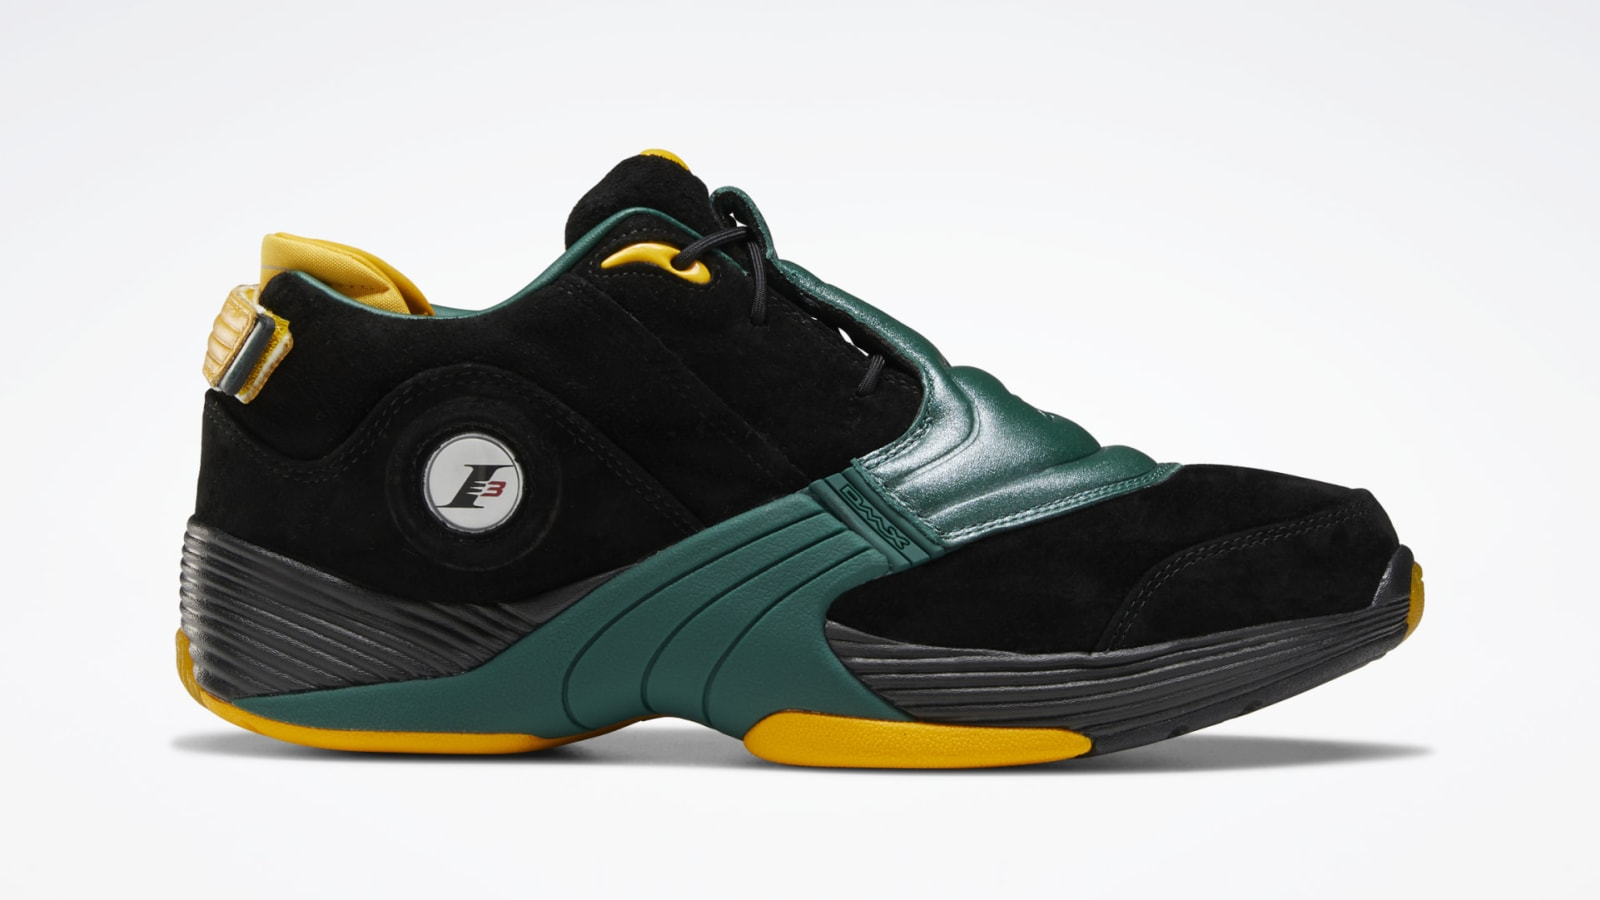 Allen Iverson's Reebok Answer V Honors High School With New Colorway